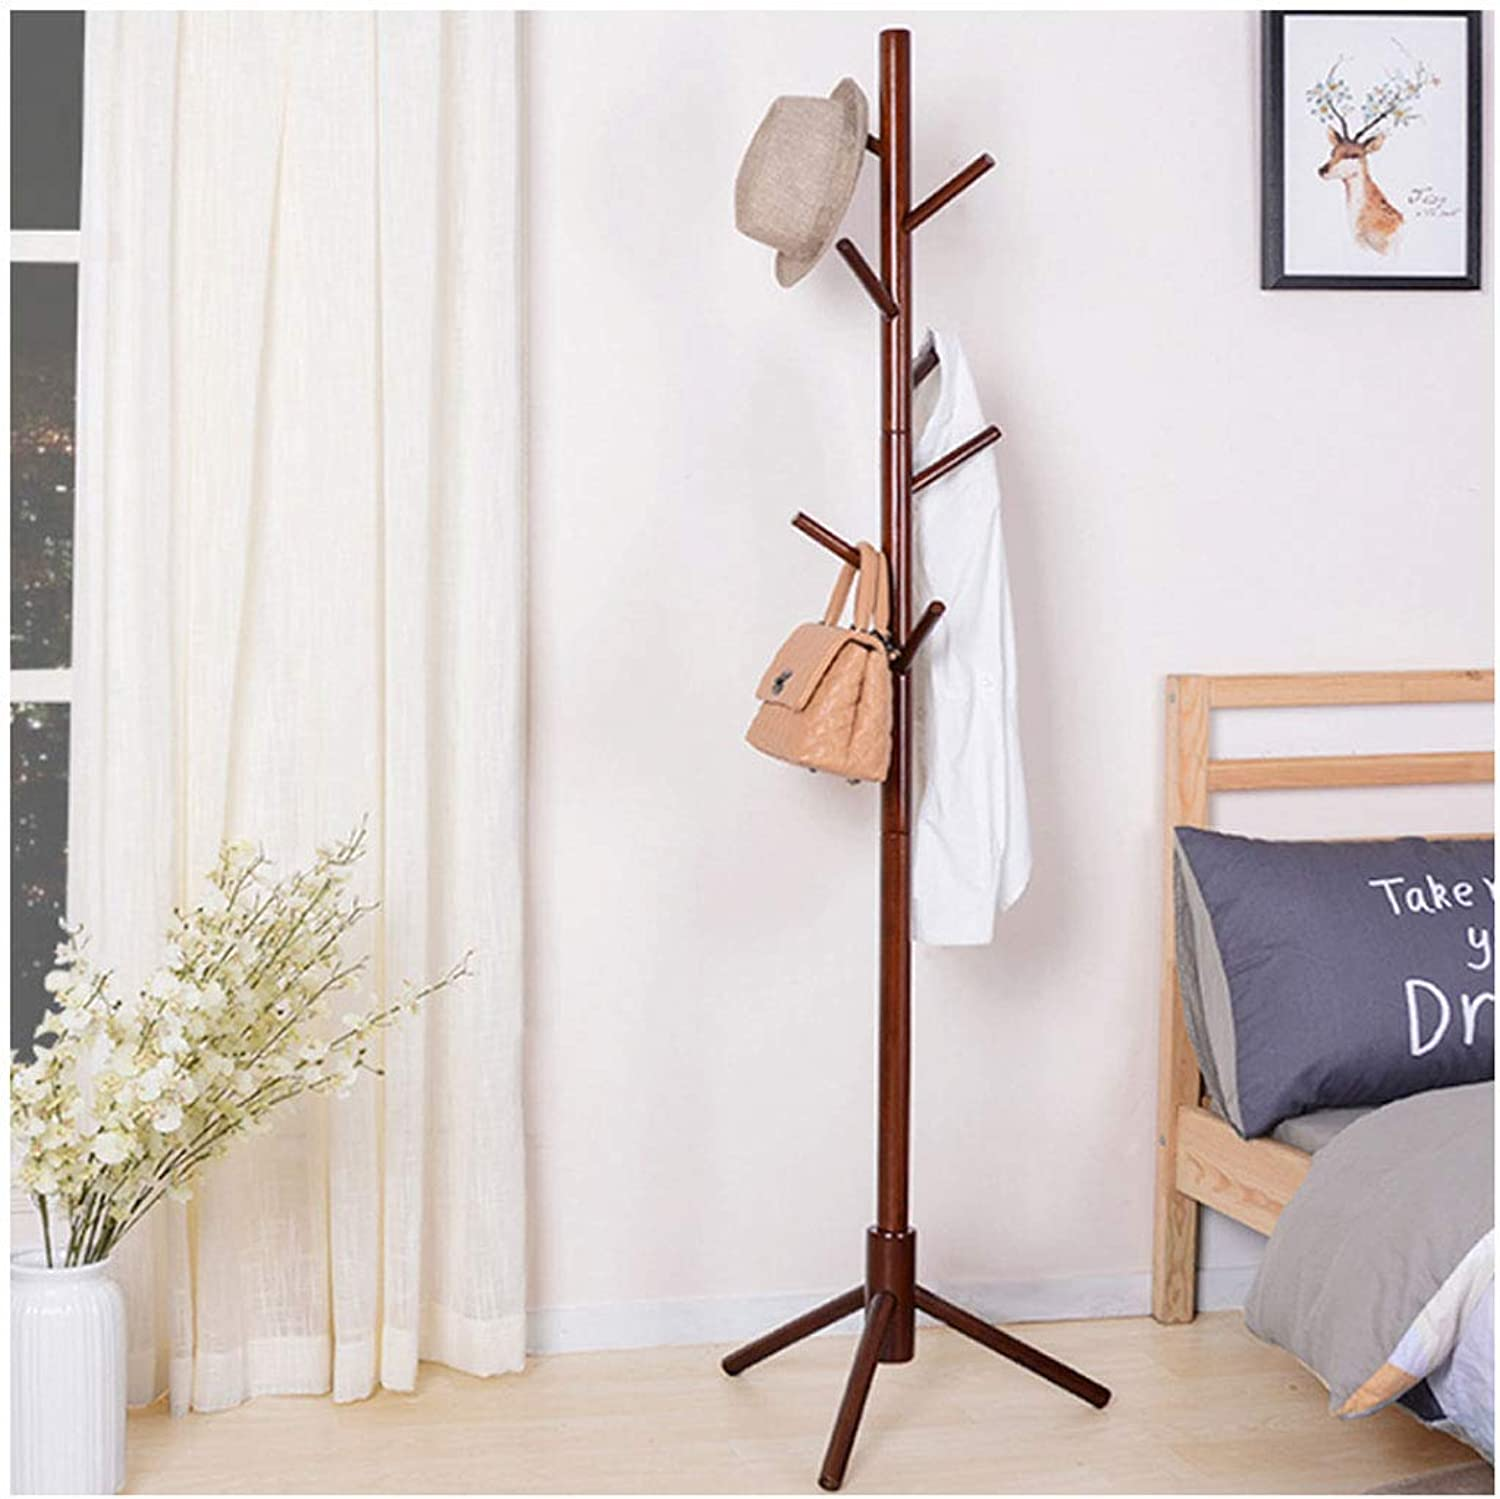 Coat Rack greenical Coat Rack Floor Stand Modern Hanger Creative Solid Wood Bedroom Living Room Simple Save Space (color   Red Wine, Size   43X43X175cm)